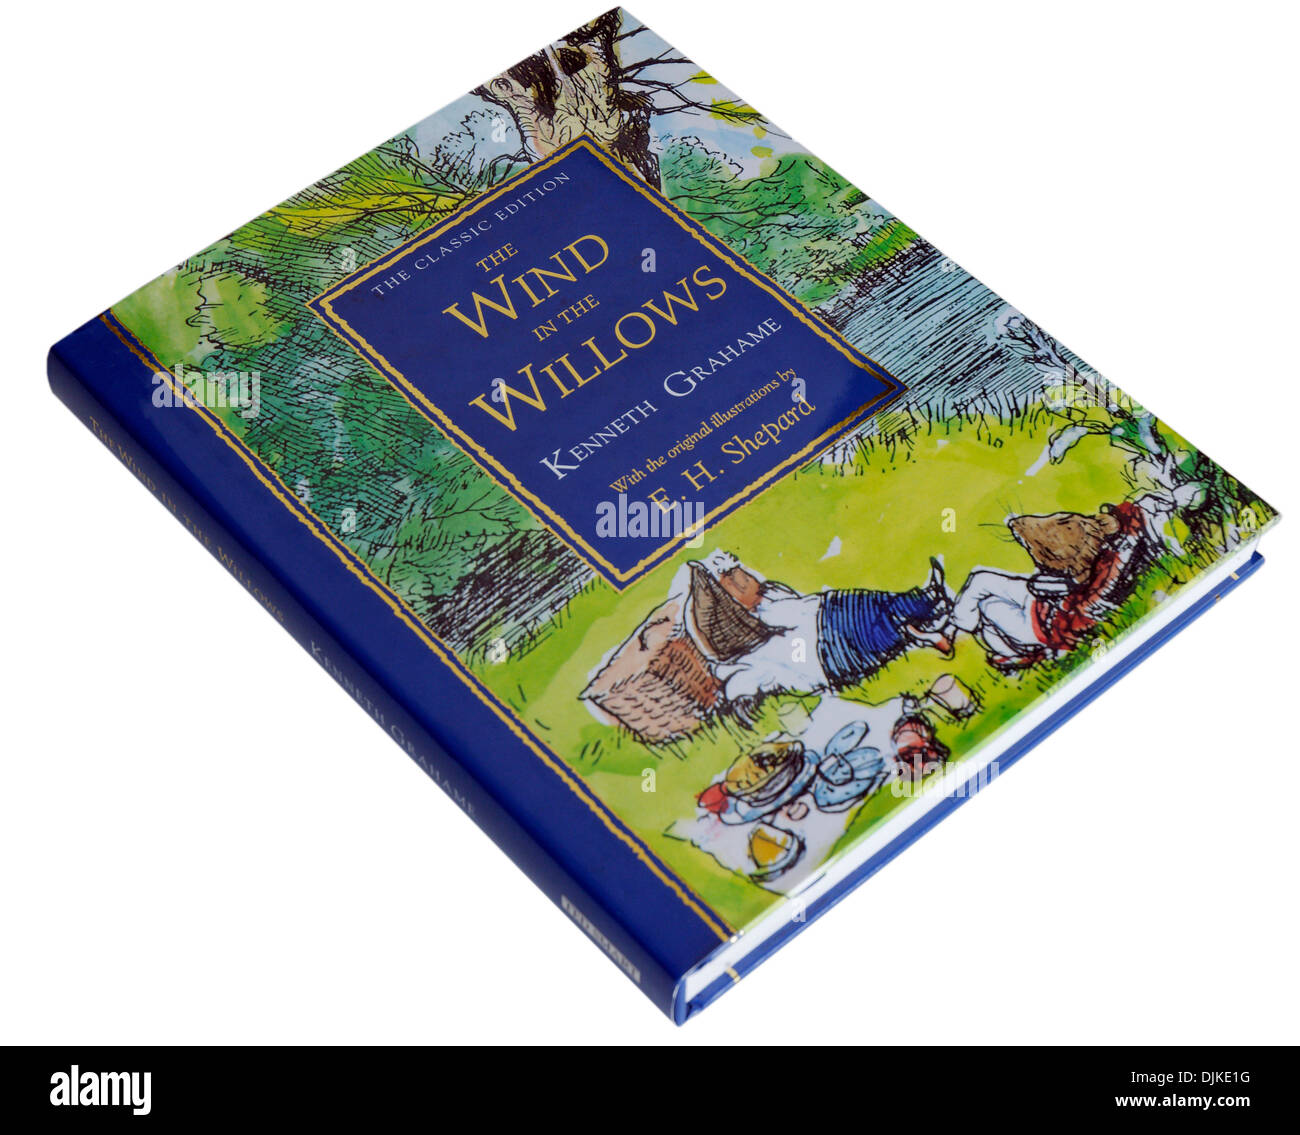 A lovely EH Shepard illustrated edition of The Wind in the Willows by Kenneth Grahame - Stock Image